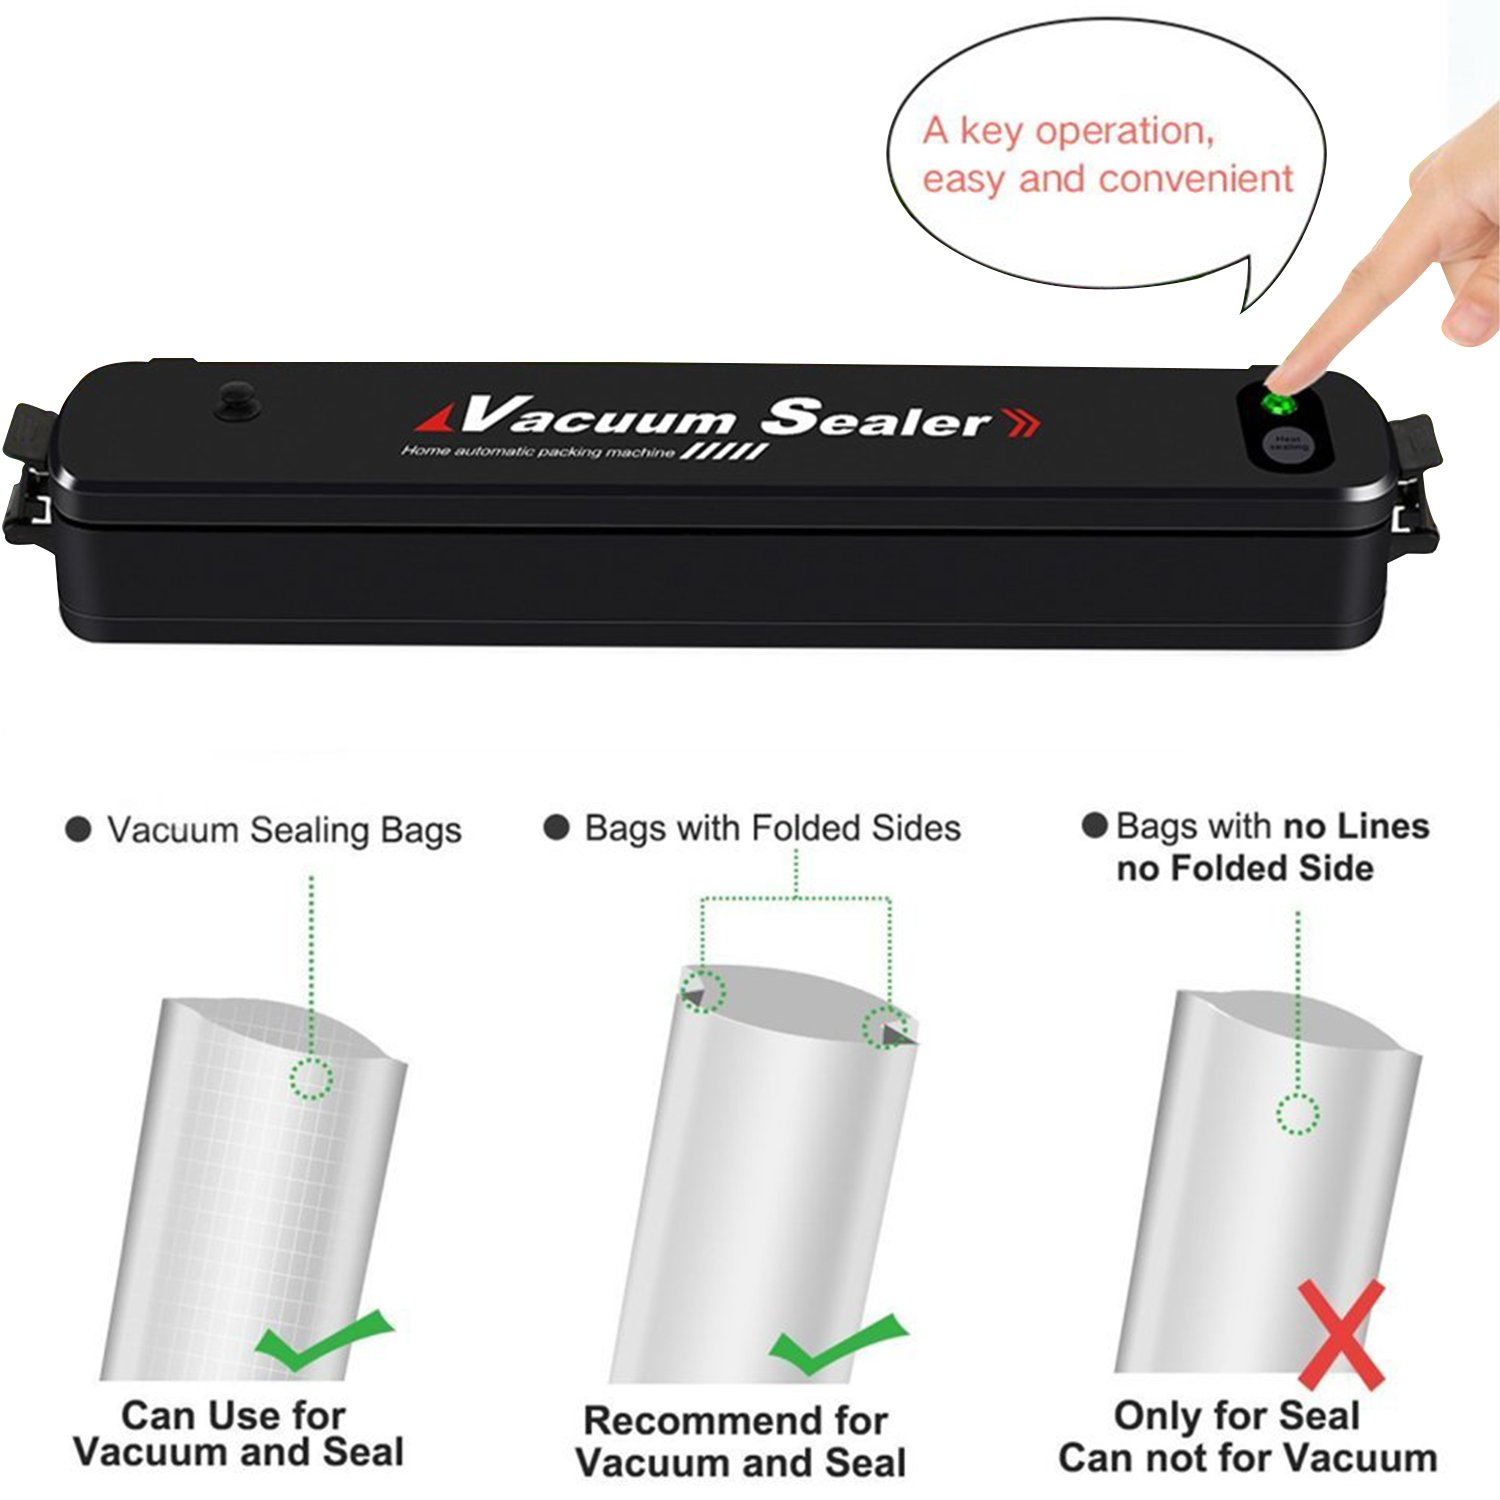 Vacuum Sealer Bamyko Portable Compact Vacuum Sealer Machine Automatic Vacuum Sealing System for Food Preservation and Storage + 15pcs Free Sealer Bags by Bamyko (Image #5)